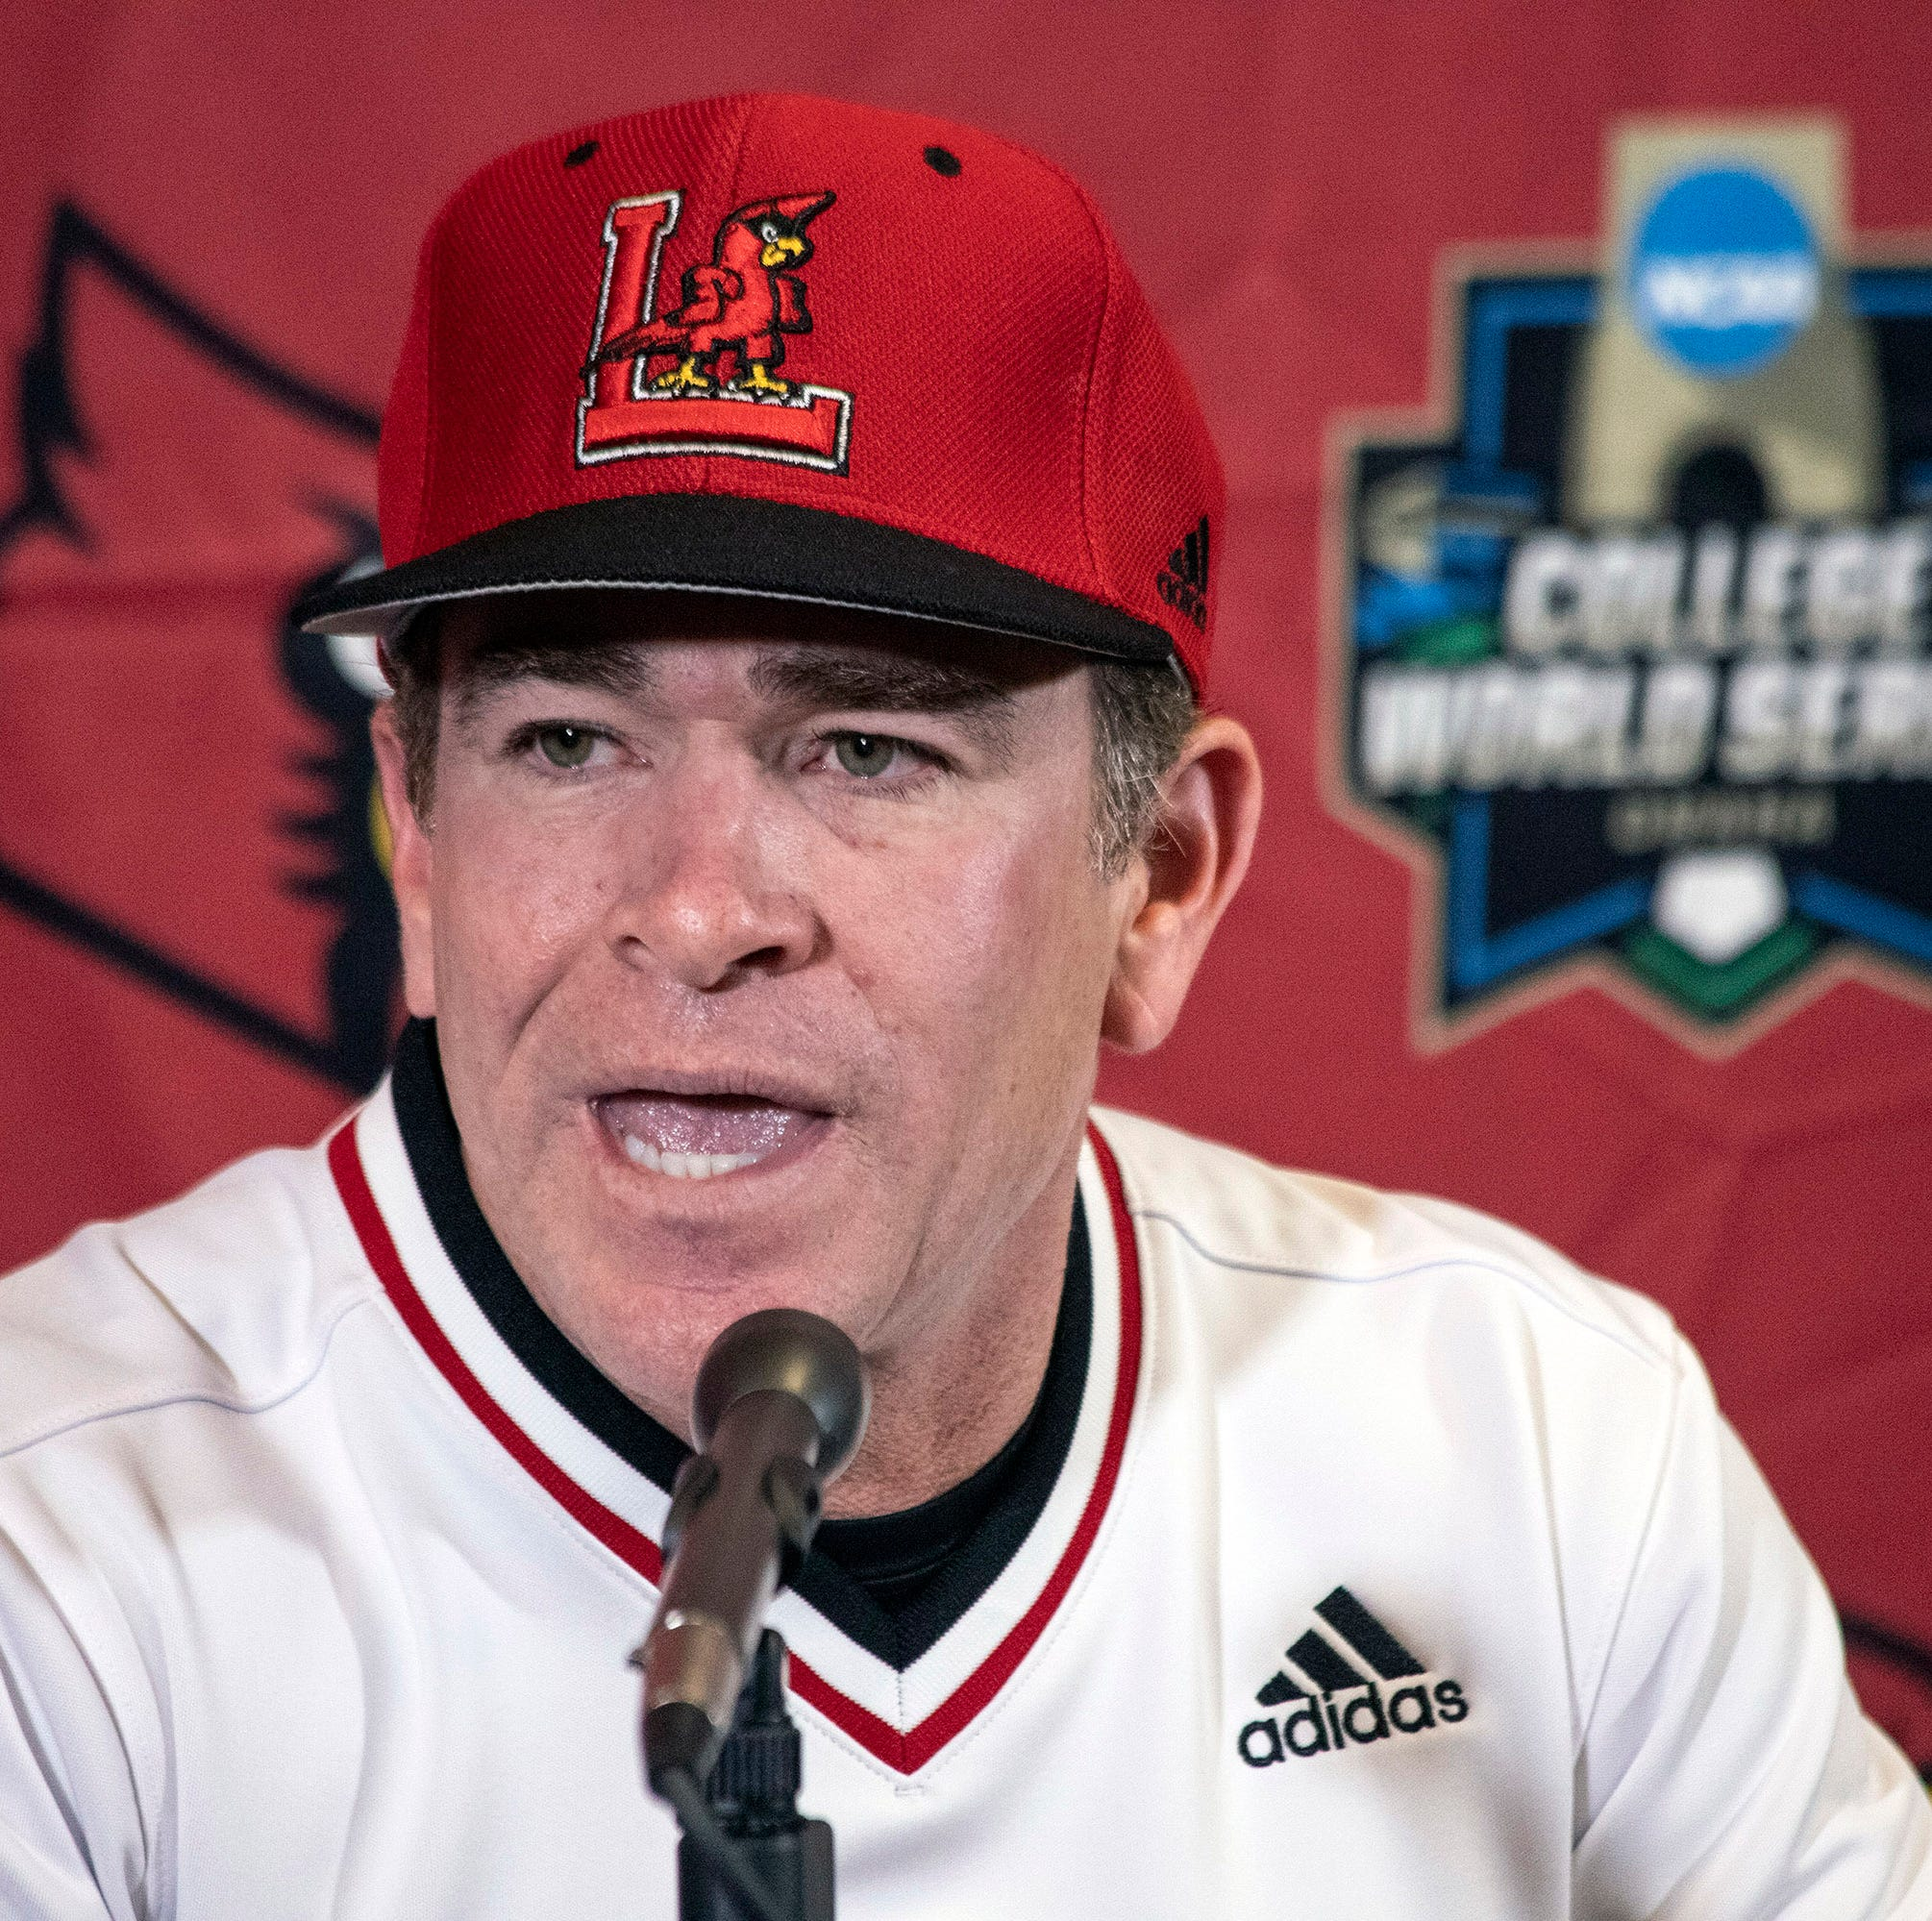 Louisville baseball beat Alabama A&M 32-1 ... that really was the final score